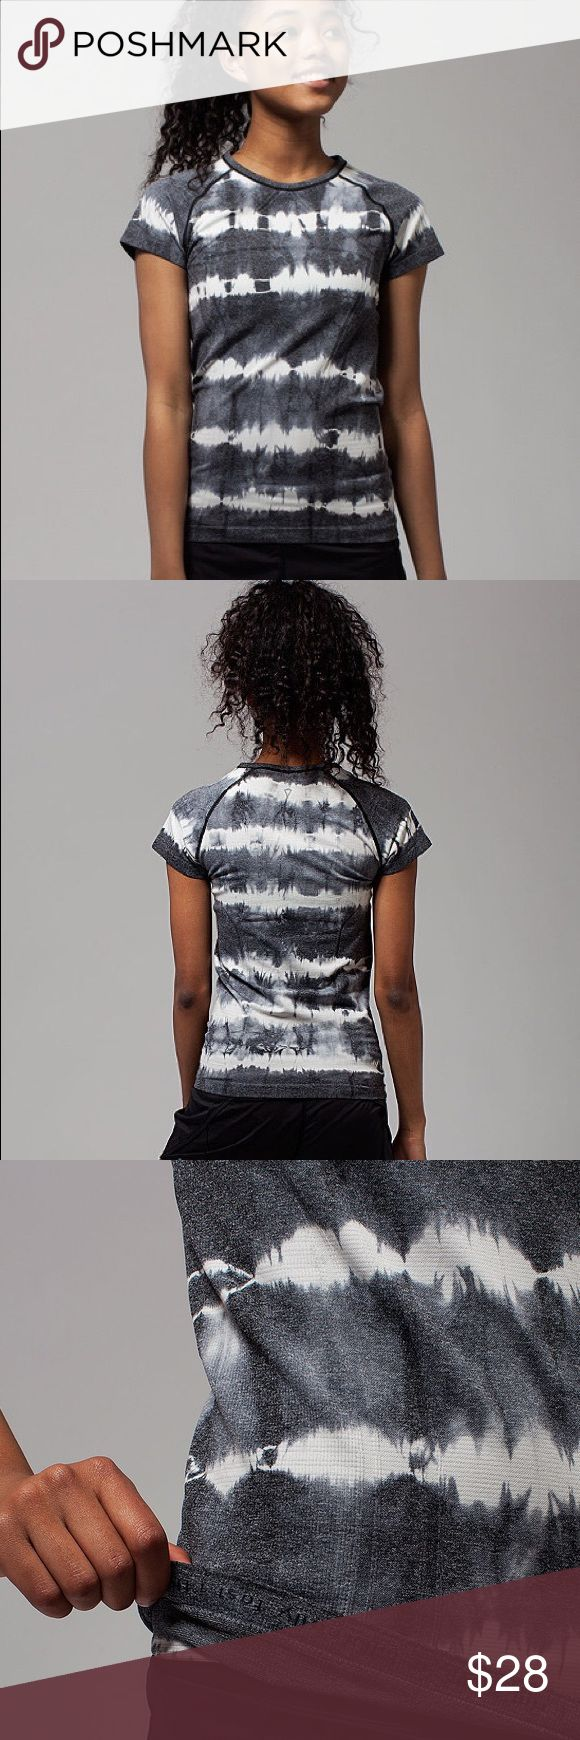 Ivivva by lululemon Black Tie-Dye Fly Tech Shirt Ivivva by lululemon fly knit short sleeve tee in excellent used condition. Size L in kids should fit about size 0-2 in women's. Feel free to ask questions or make an offer! PRODUCT DESCRIPTION: This too-cool tee features mesh ventilation and Silverescent® technology for a practice-ready piece that stays cool and clean.  Features- Silverescent® technology powered by X-STATIC ® inhibits the growth of odor-causing bacteria  Classic fit…